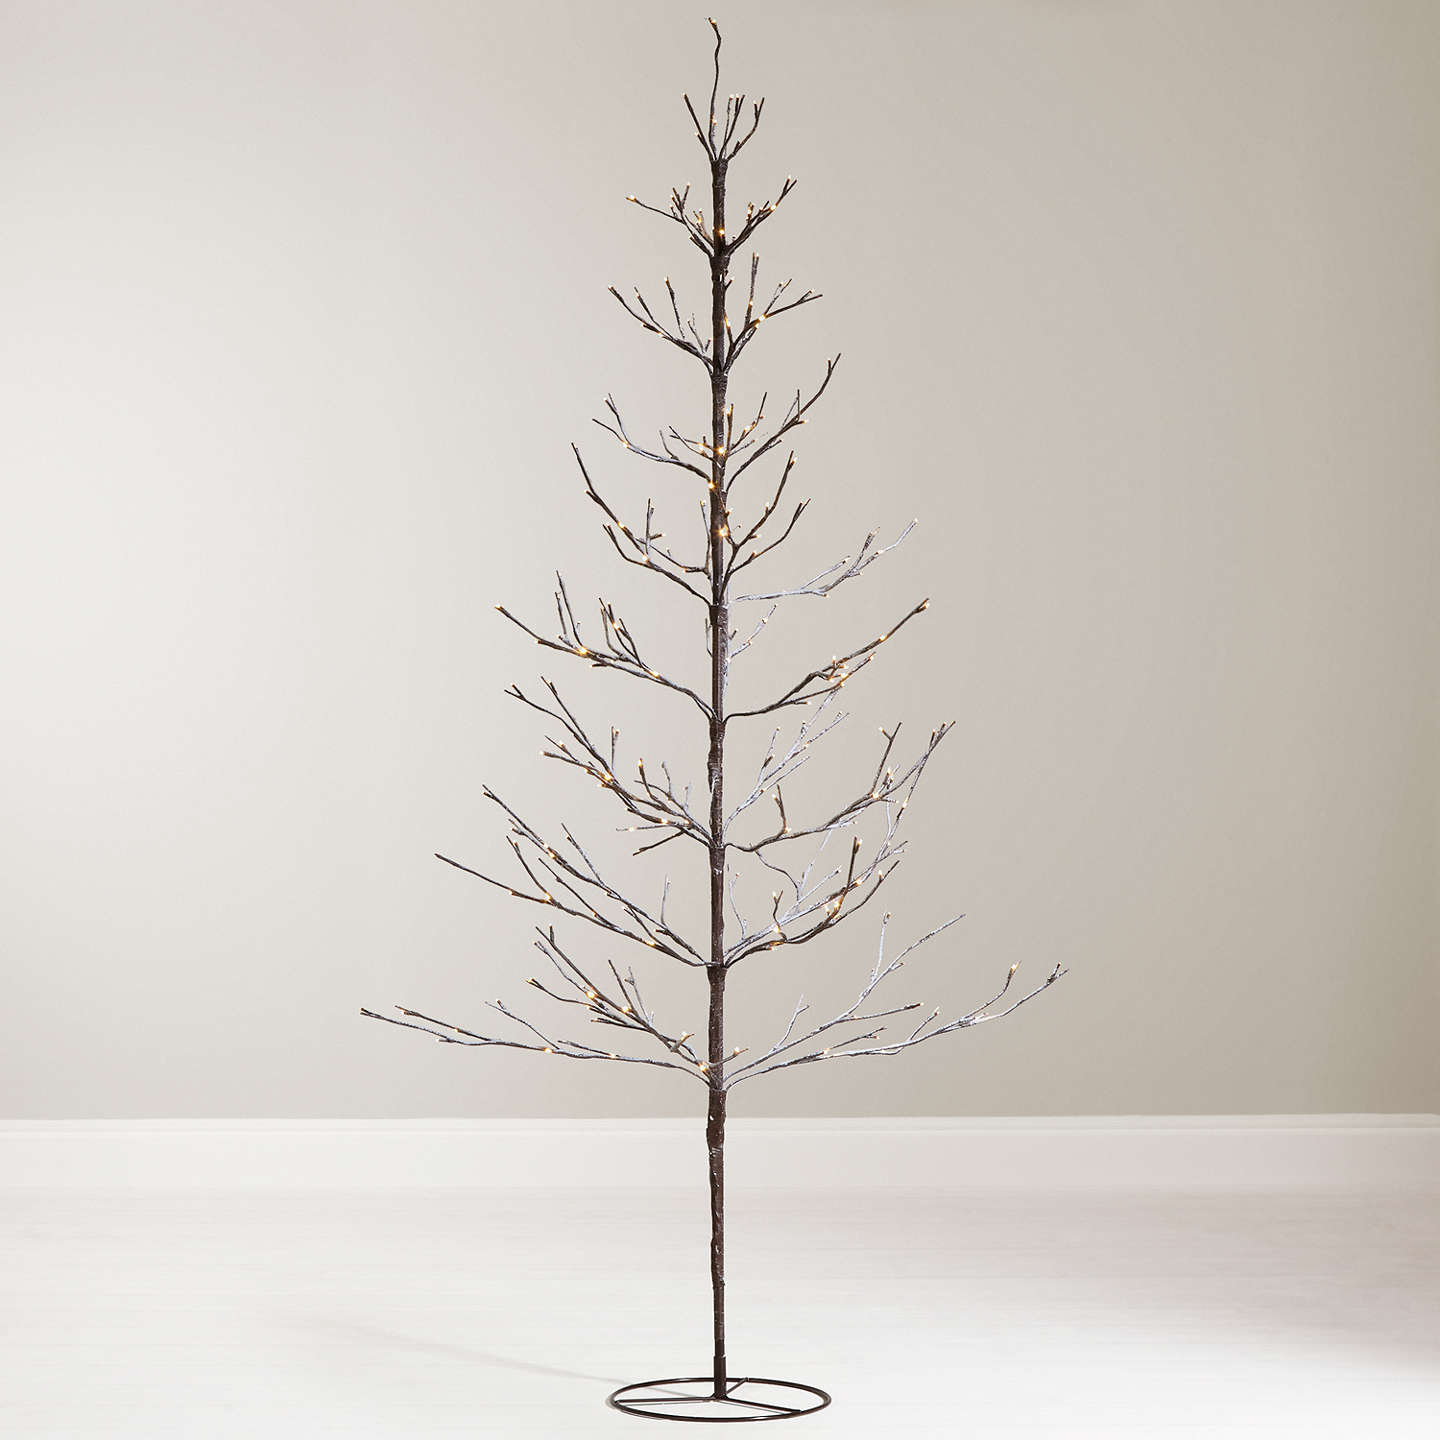 Pre Lit Christmas Twig Tree: John Lewis 6ft Pre-Lit Snowy Twig Christmas Tree, White At